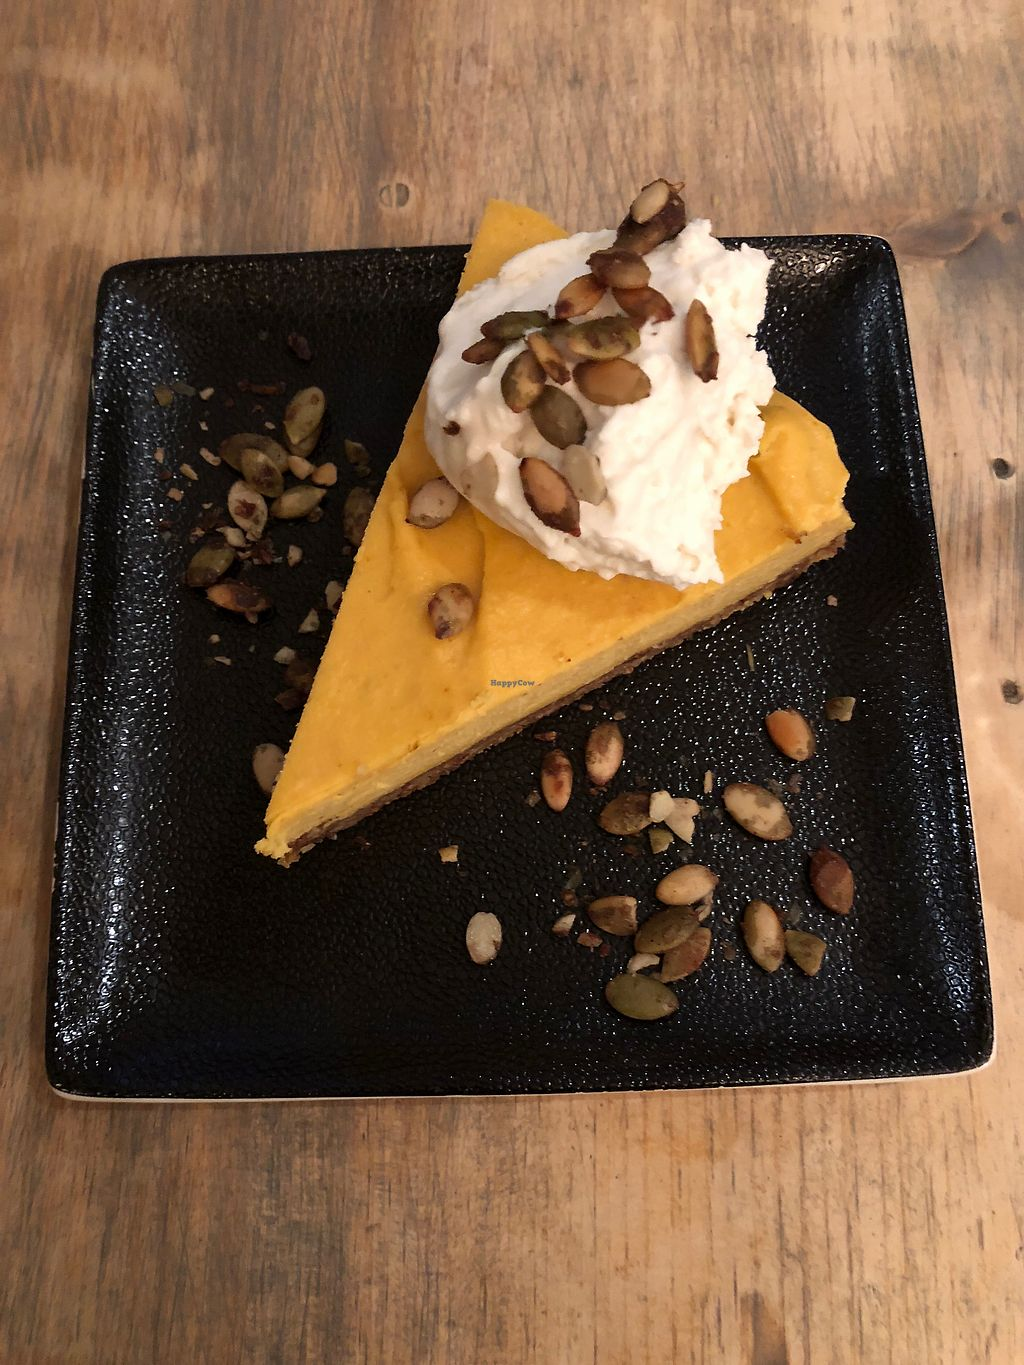 "Photo of enVie A Vegan Kitchen  by <a href=""/members/profile/CathSJ"">CathSJ</a> <br/>Pumpkin cheesecake  <br/> February 19, 2018  - <a href='/contact/abuse/image/39515/361272'>Report</a>"